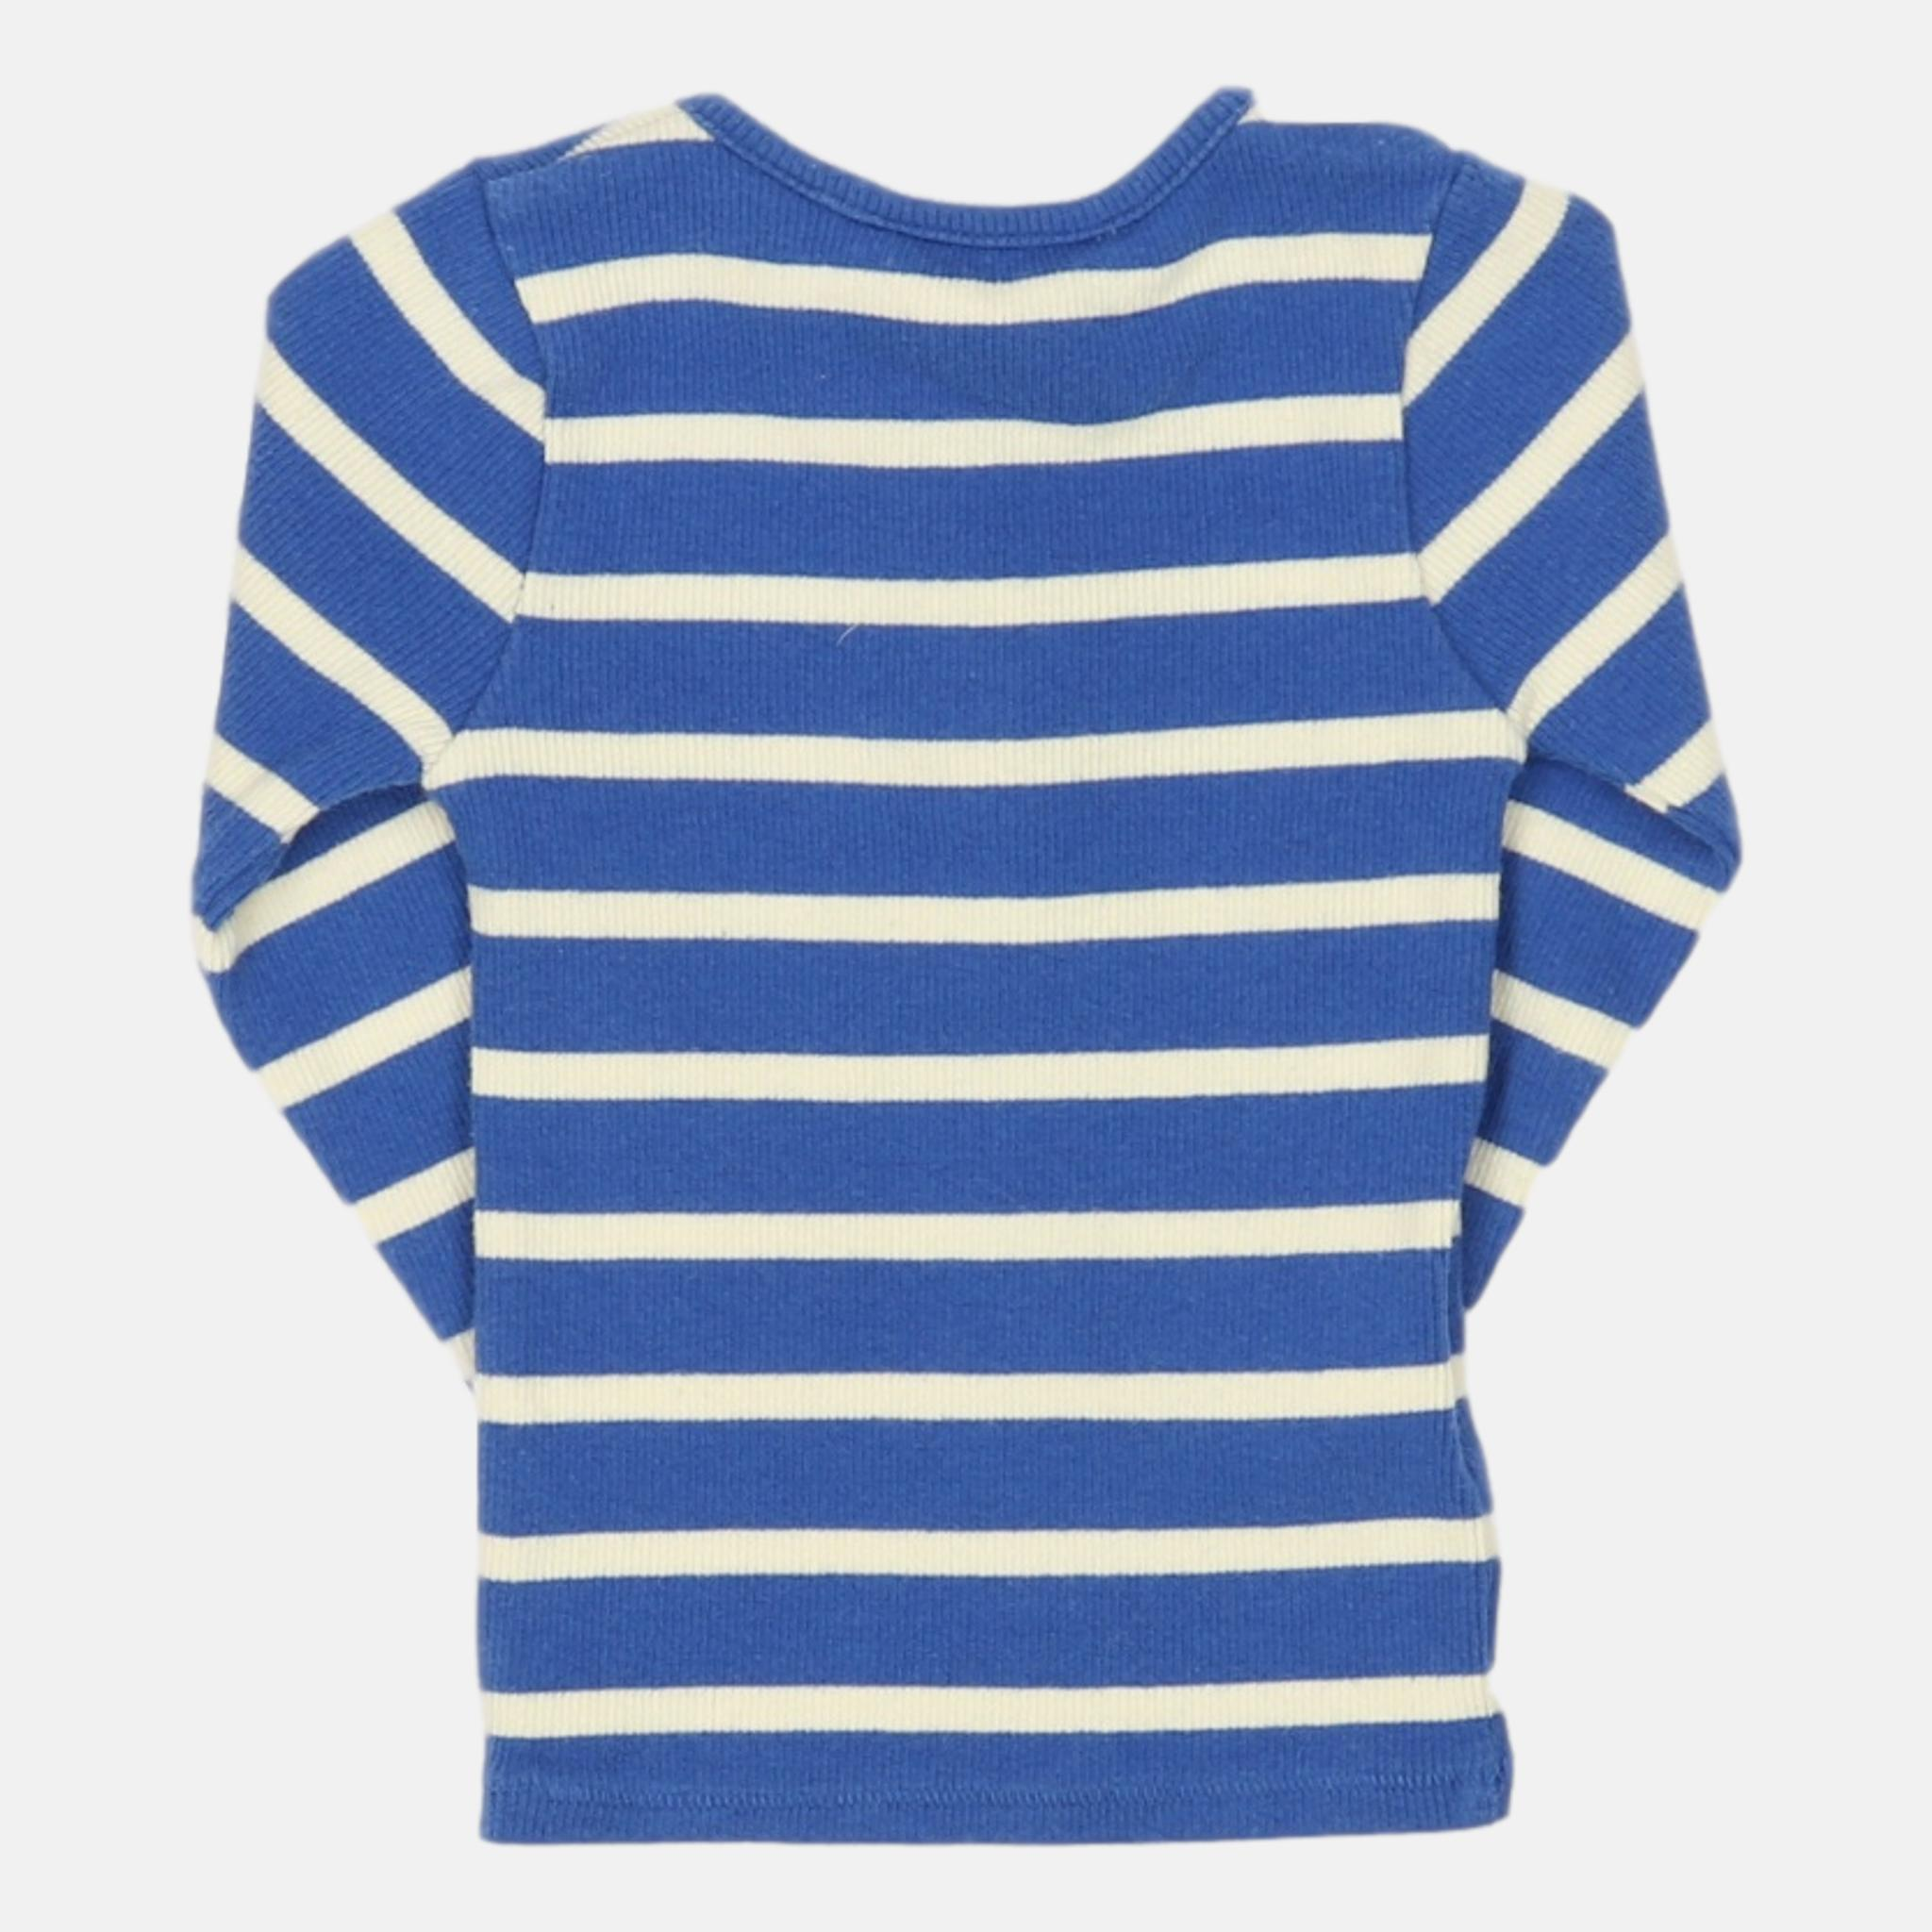 Long Sleeve T-Shirt, 0-3 Months